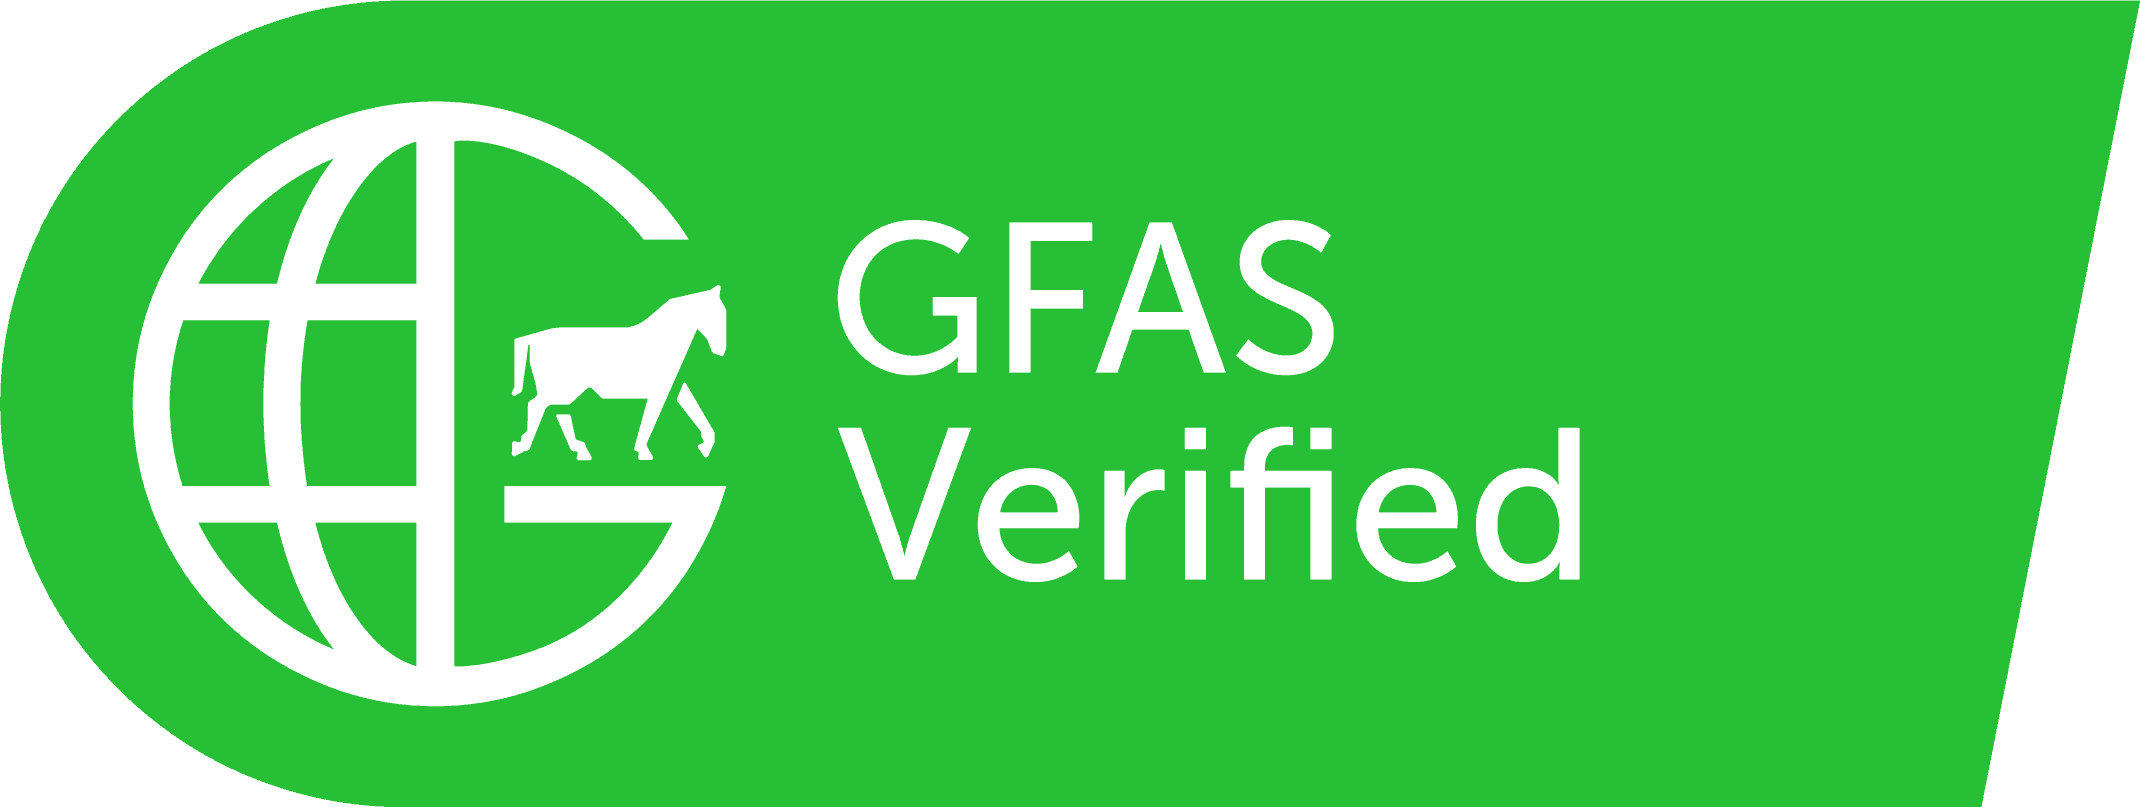 Draft Gratitude Is Verified By The Global Federation of Animal Sanctuaries